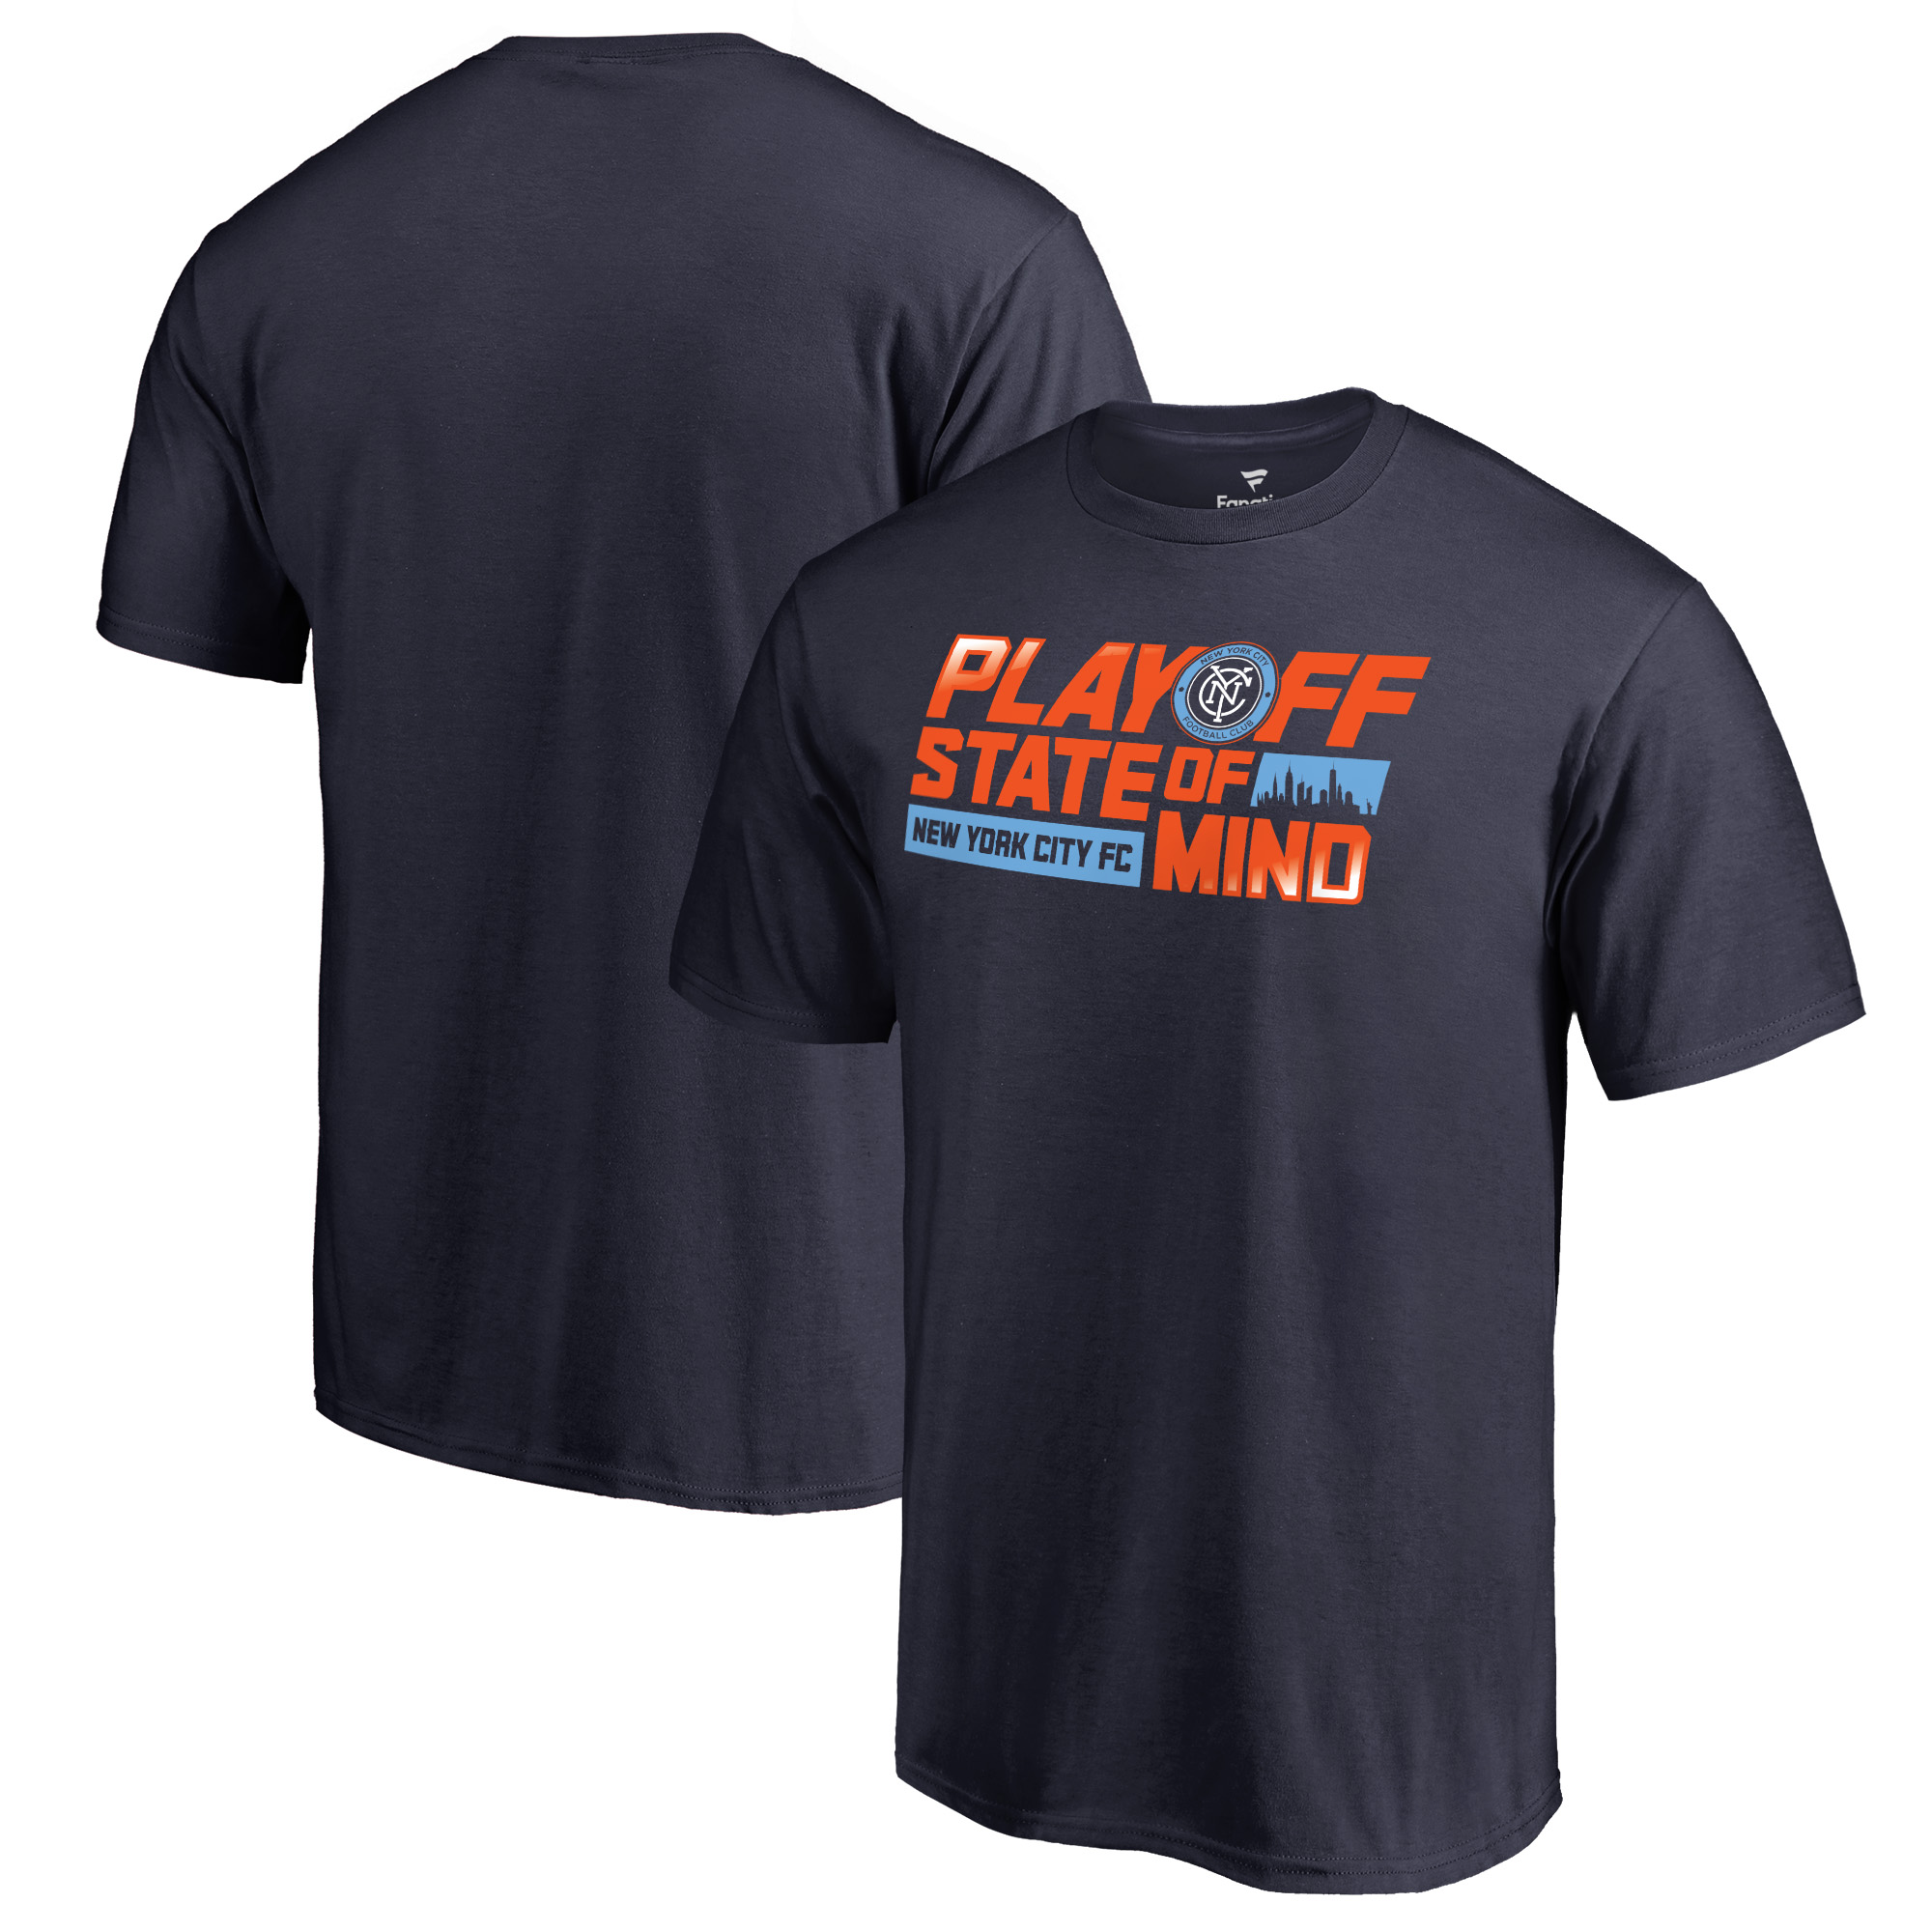 New York City FC Fanatics Branded Playoff State of Mind T-Shirt - Navy